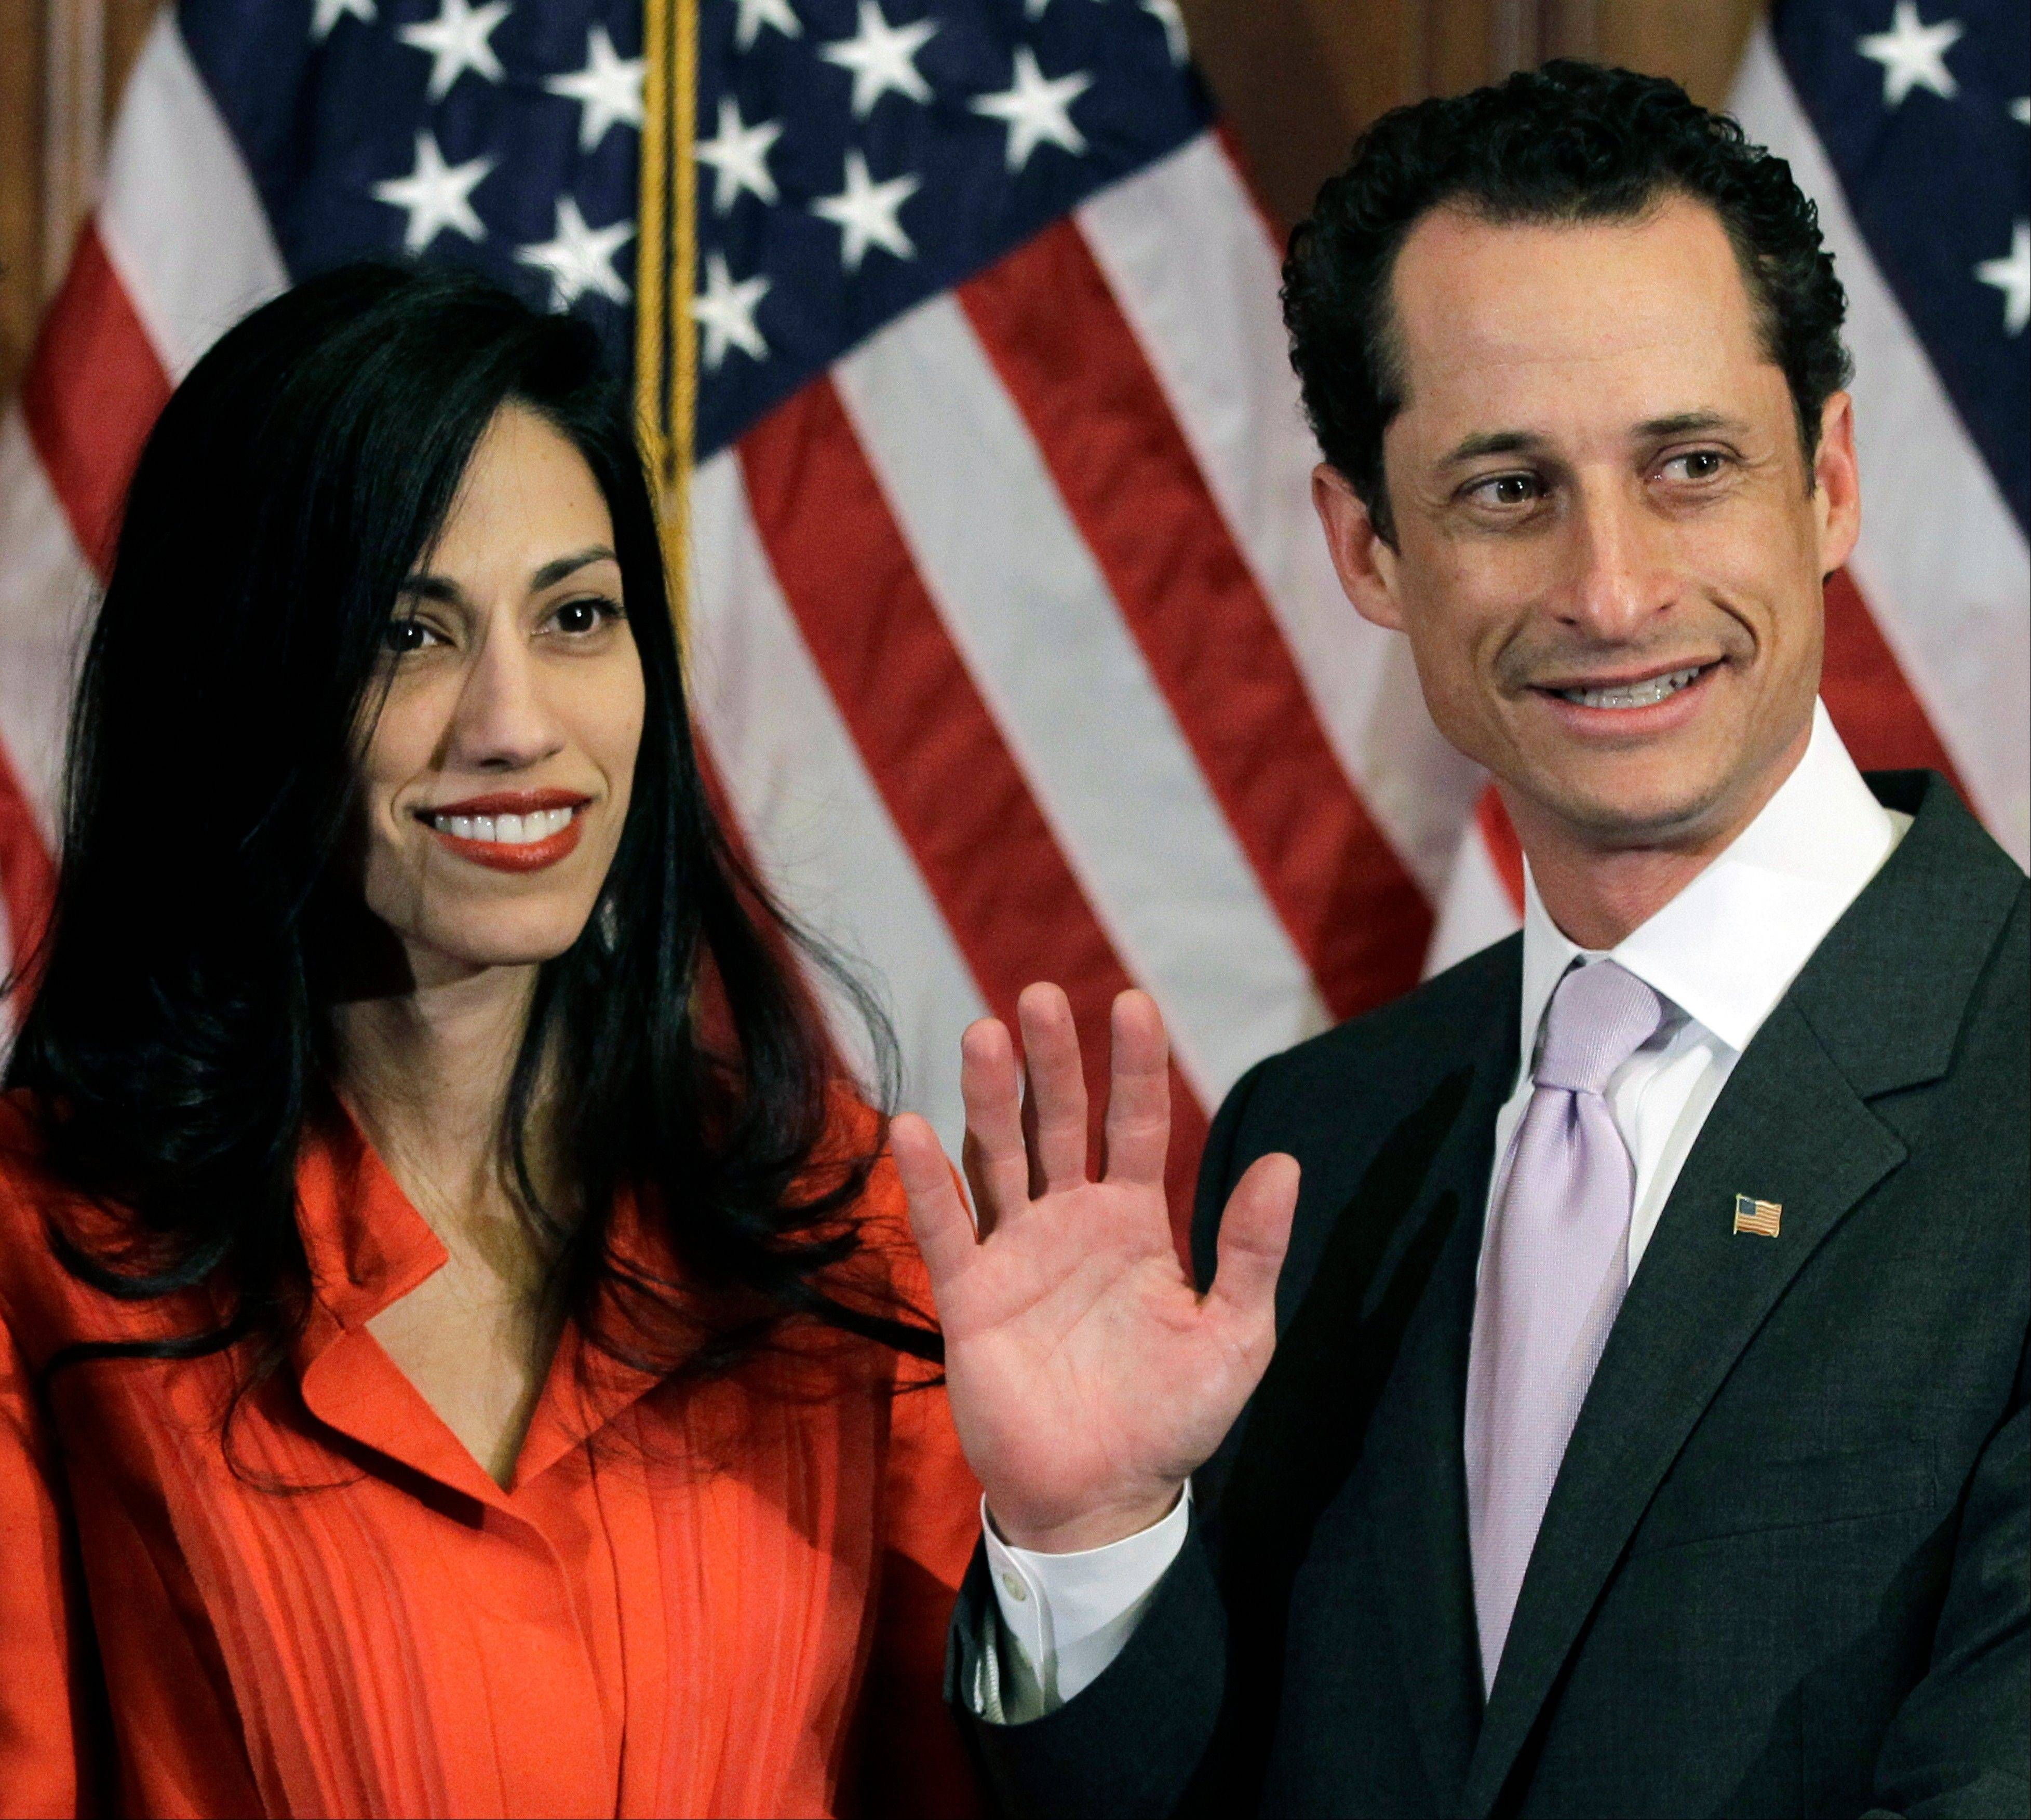 Anthony Weiner and his wife Huma Abedin pose for photographs after the ceremonial swearing in of the 112th Congress on Capitol Hill in Washington.